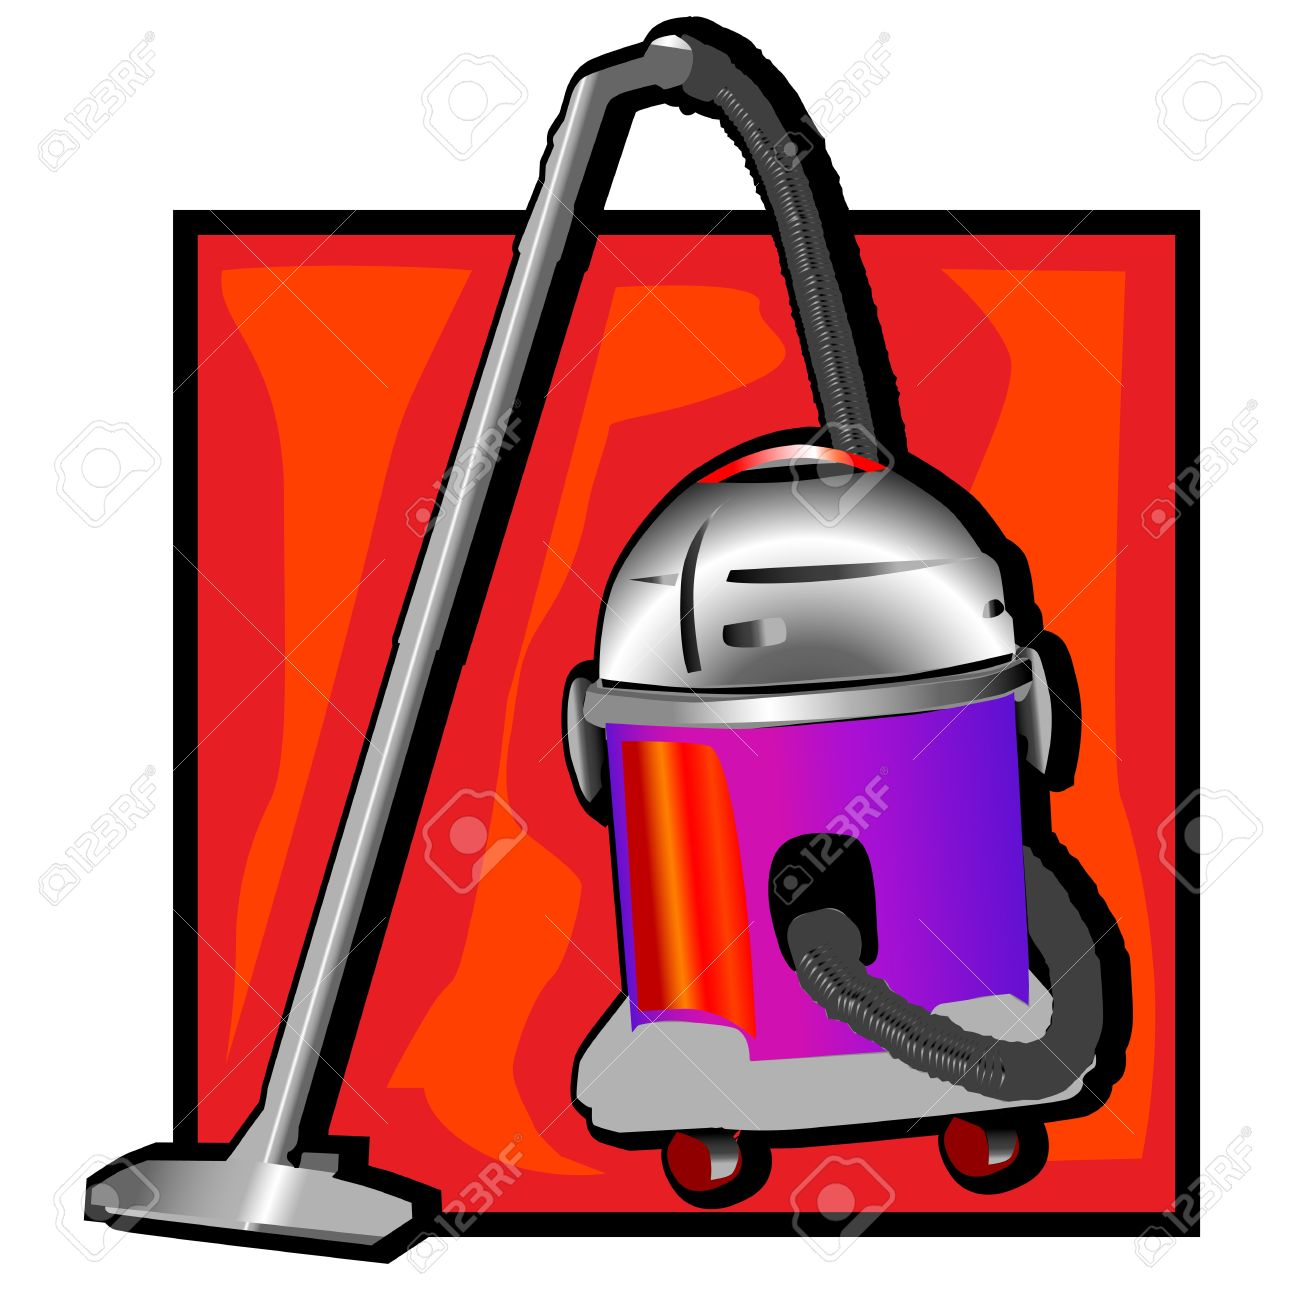 Retro vacuum cleaner clip art stock vector 11970058